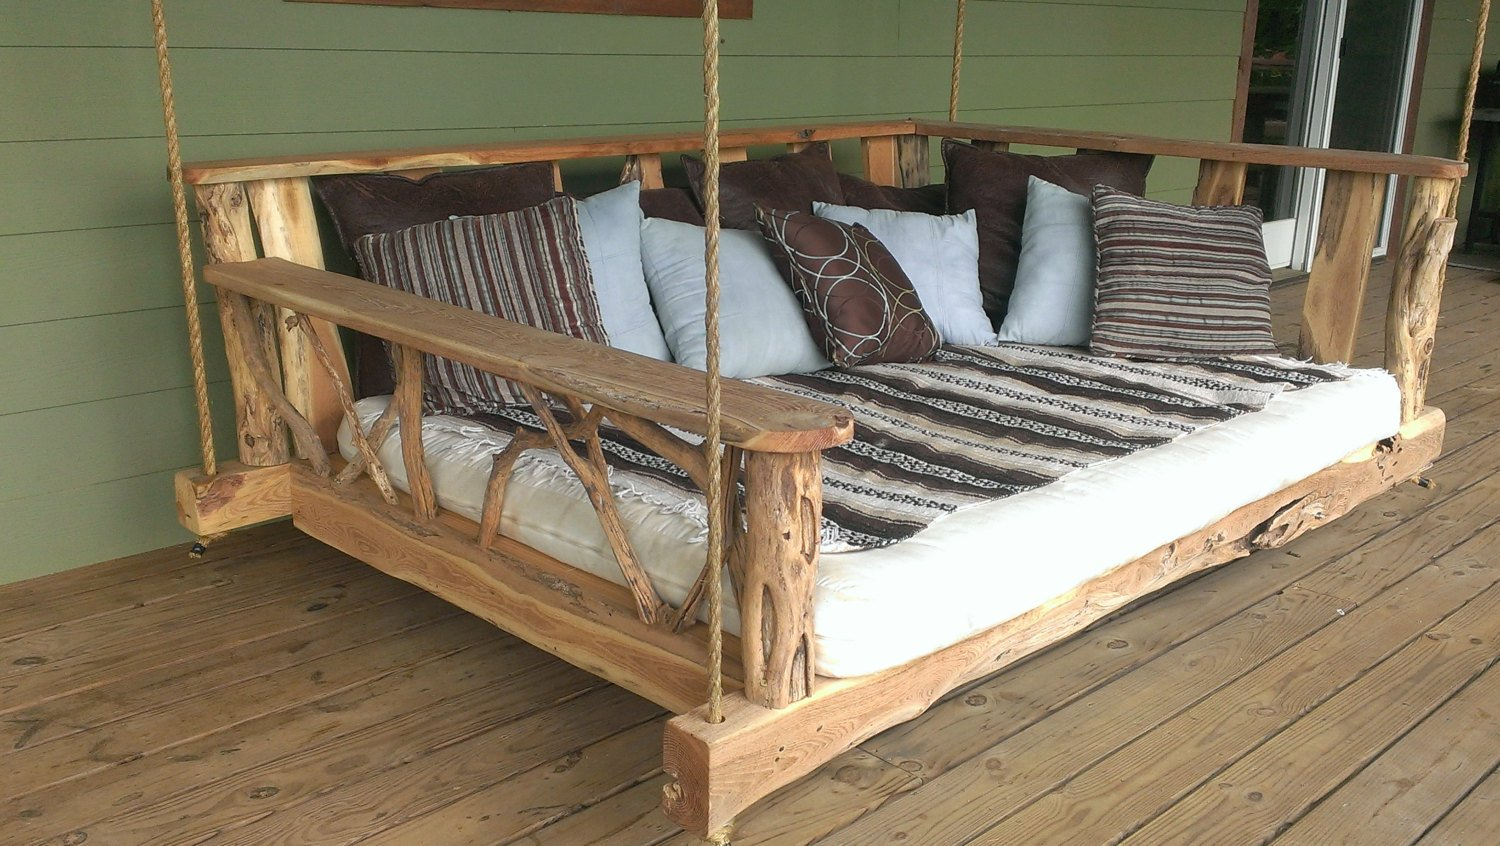 15 Custom Handcrafted Porch Swing Designs – Style Motivation Intended For Daybed Porch Swings With Stand (View 9 of 25)